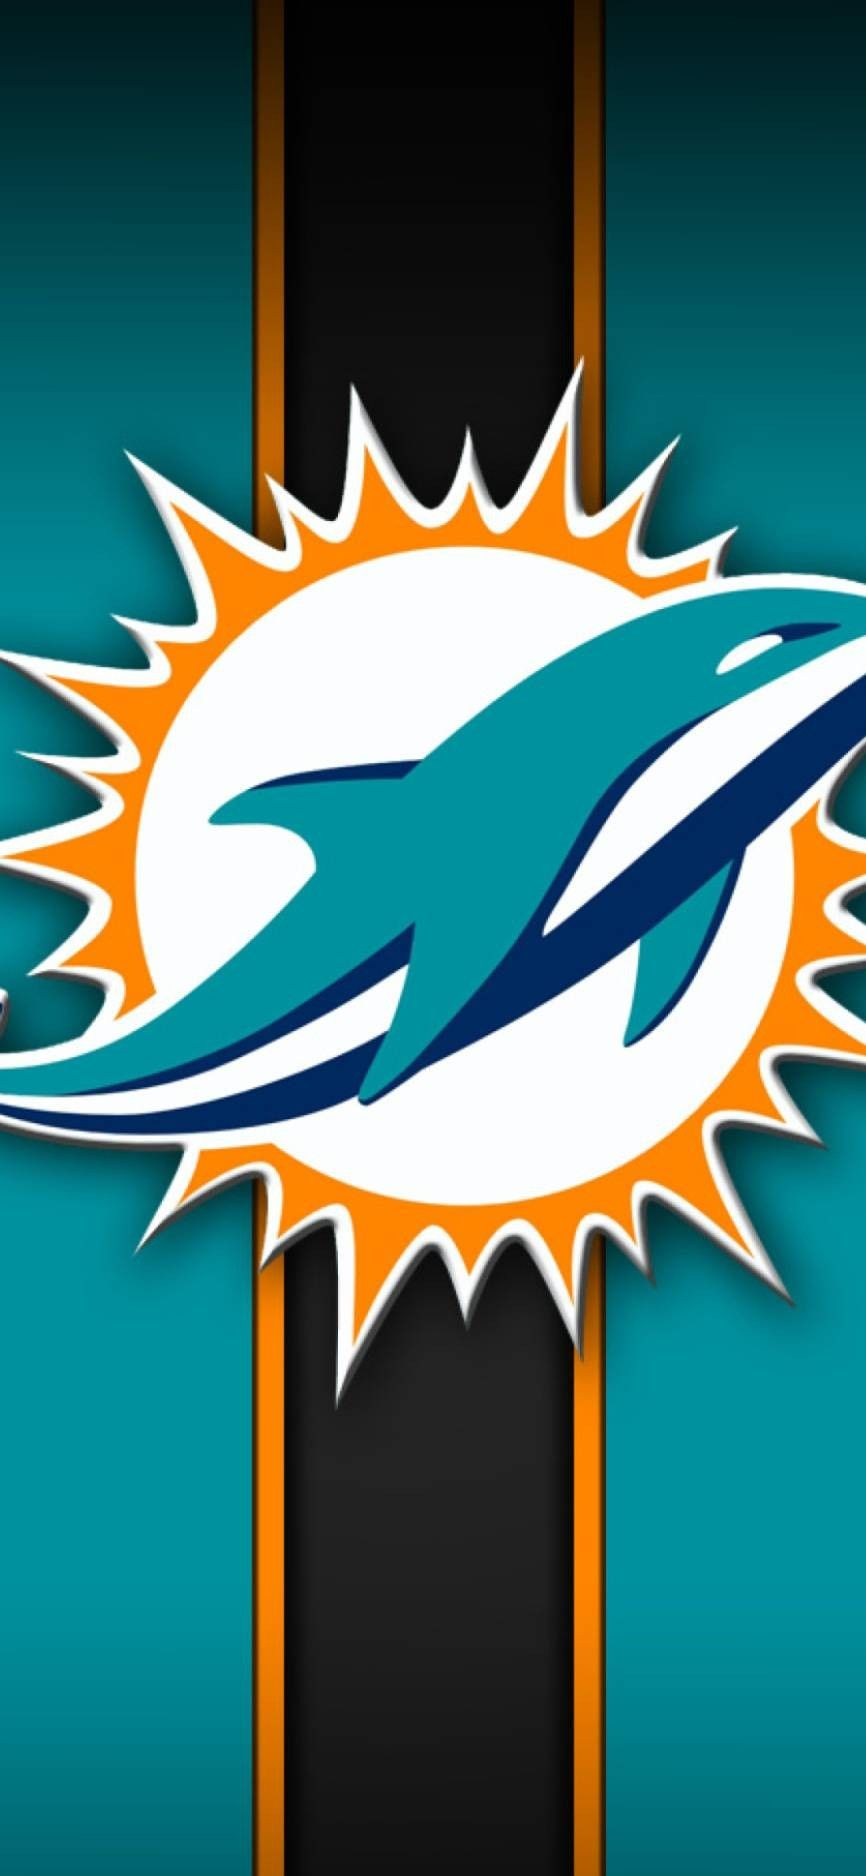 Pin By Edisson Bravo On Galaxy Abstract Cool Miami Dolphins Wallpaper Dolphins Miami Dolphins